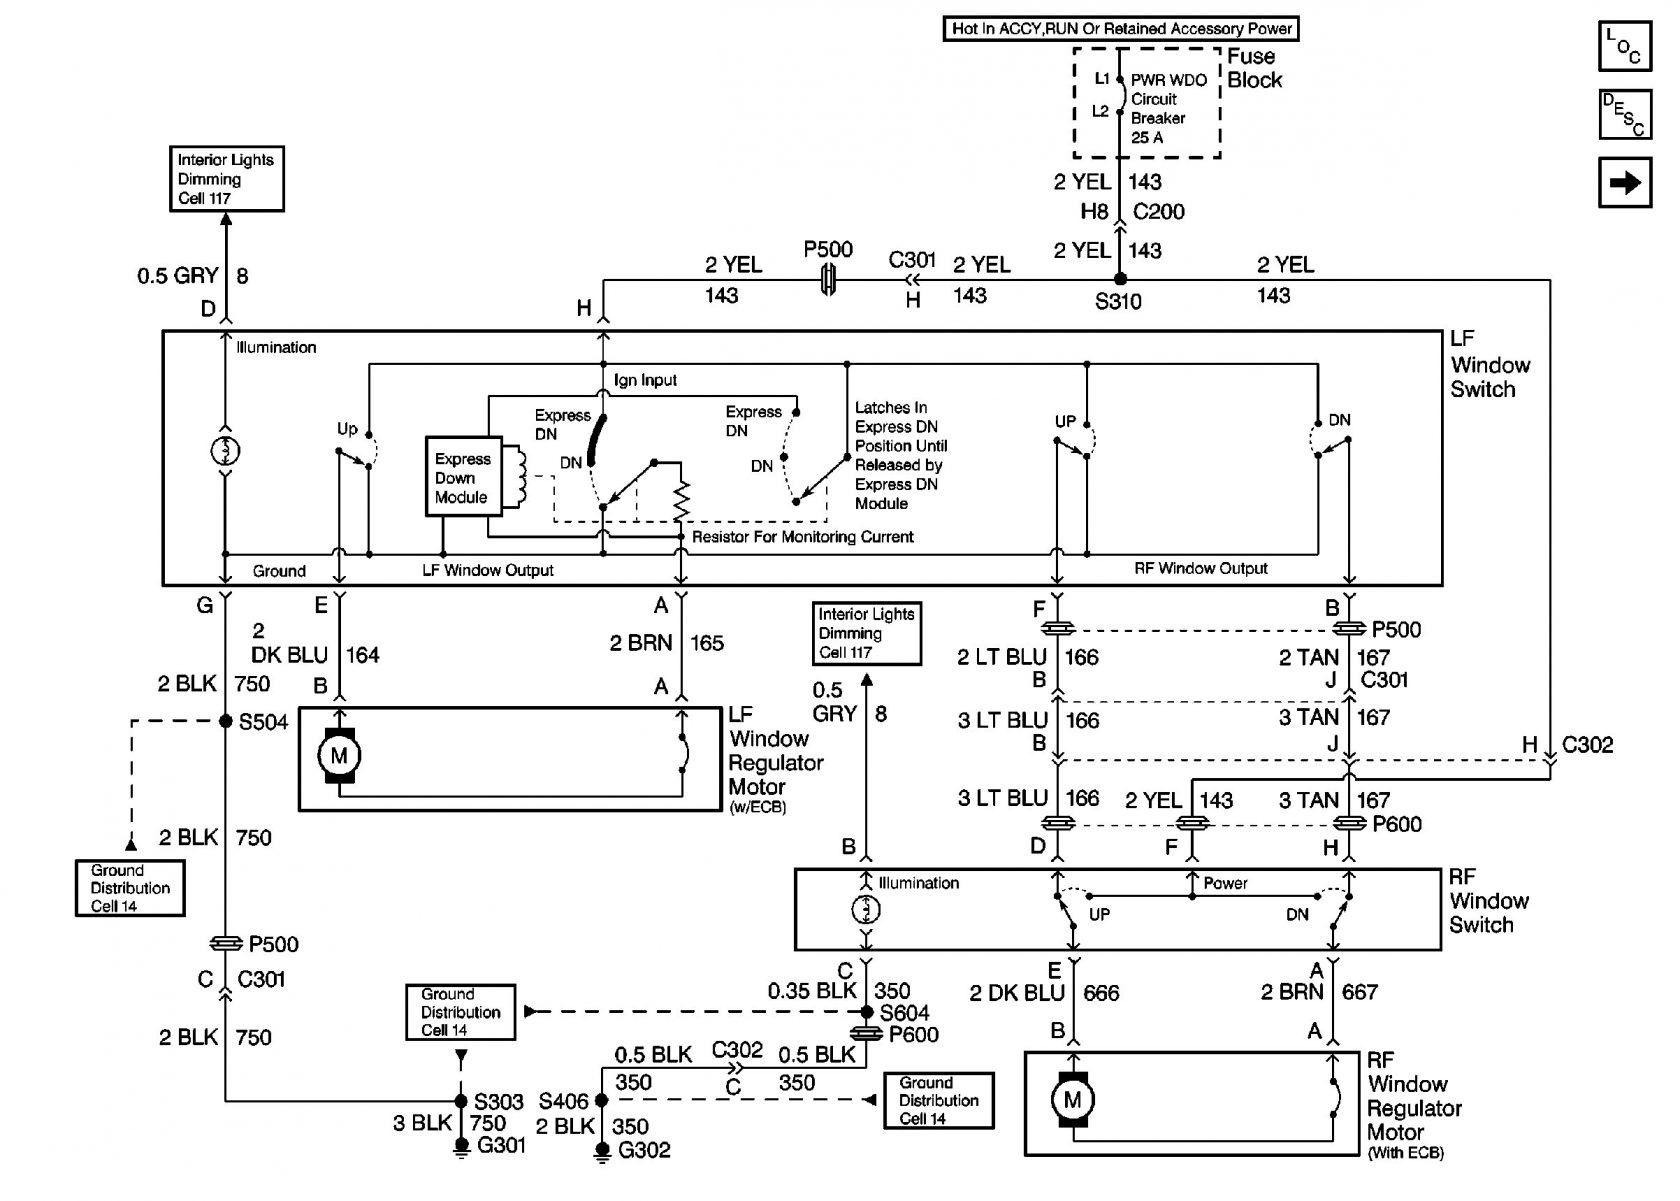 2001 subaru forester stereo wiring diagram delco 1 wire alternator 2 5i engine library